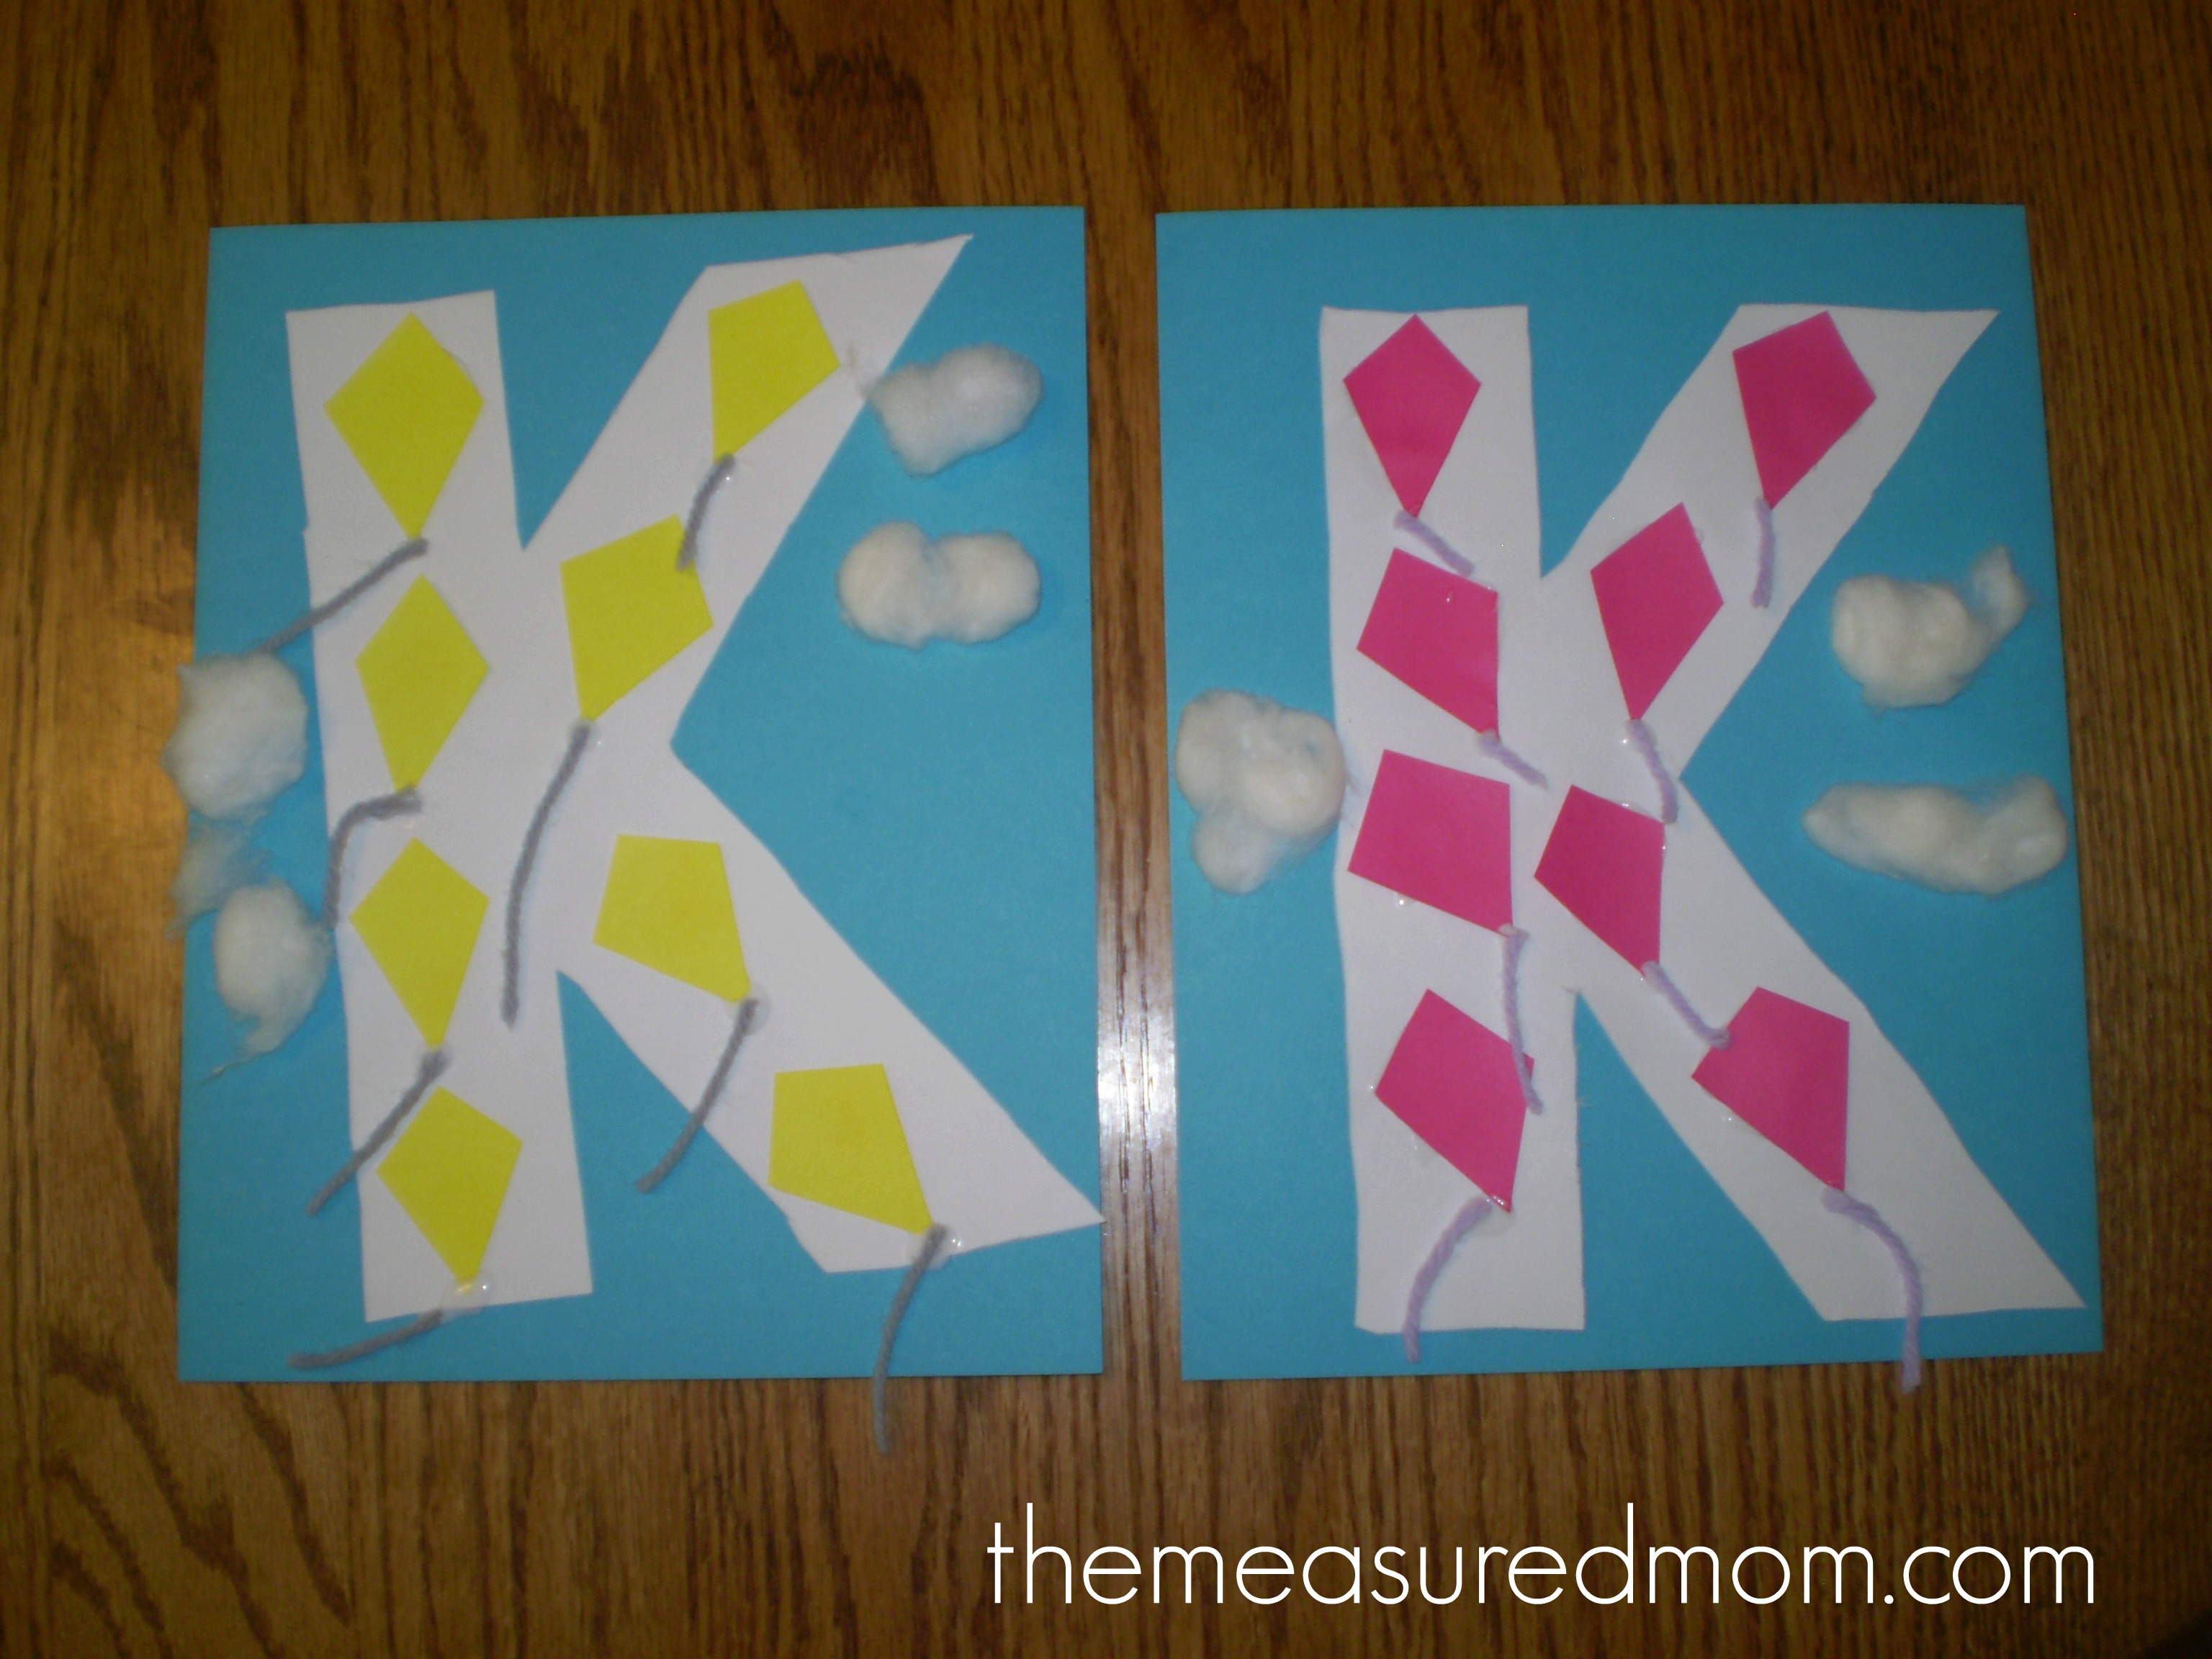 Find 7 letter K crafts for preschoolers!